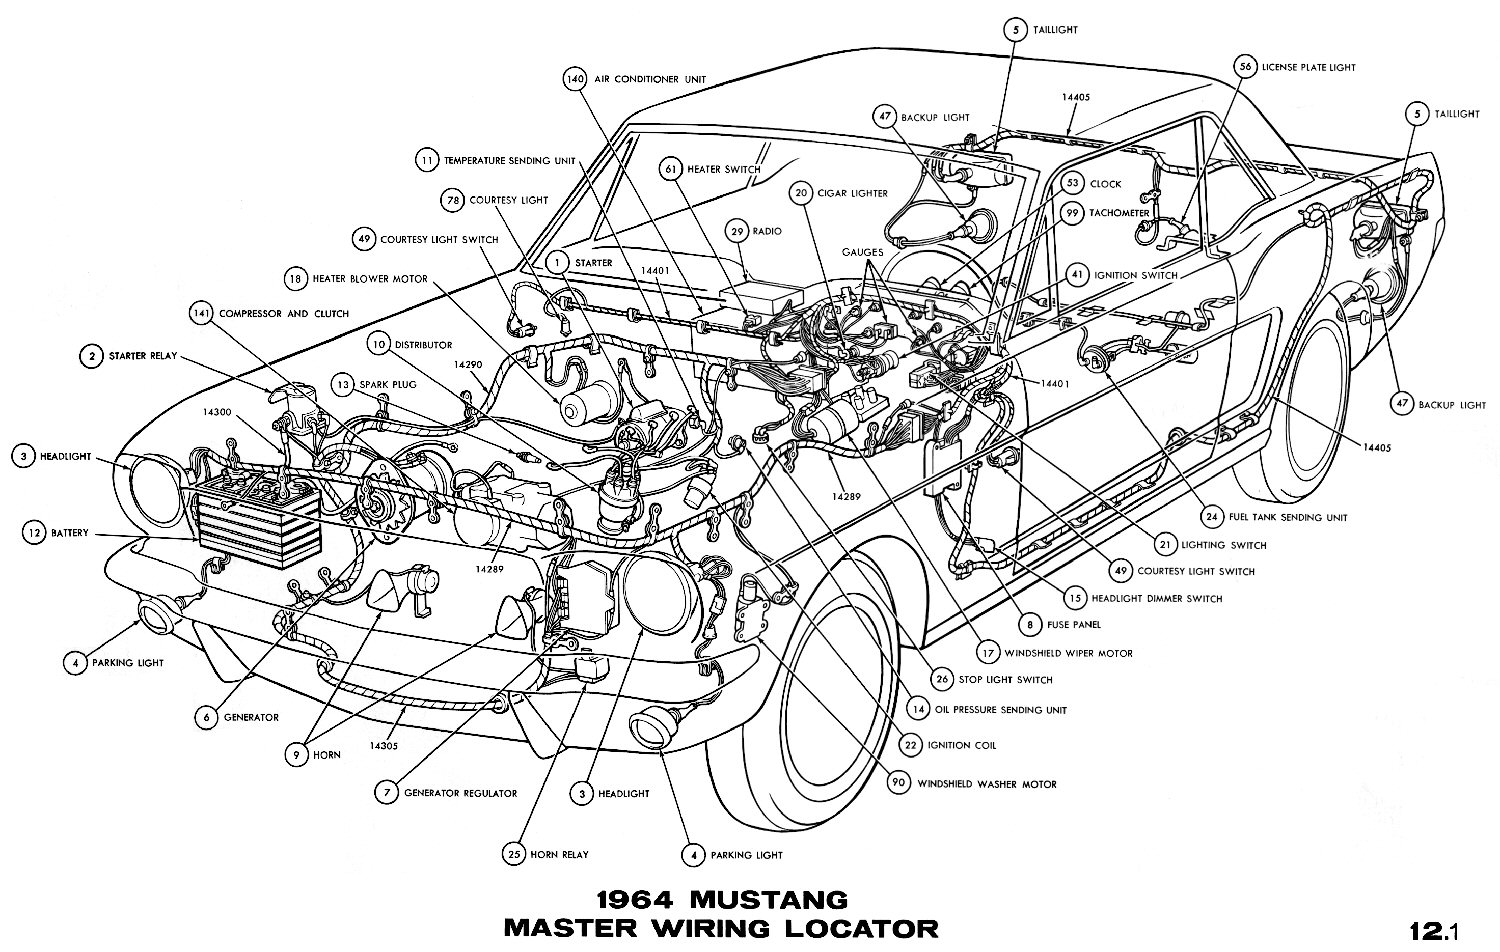 Mustang Wiring And Vacuum Diagrams Archives